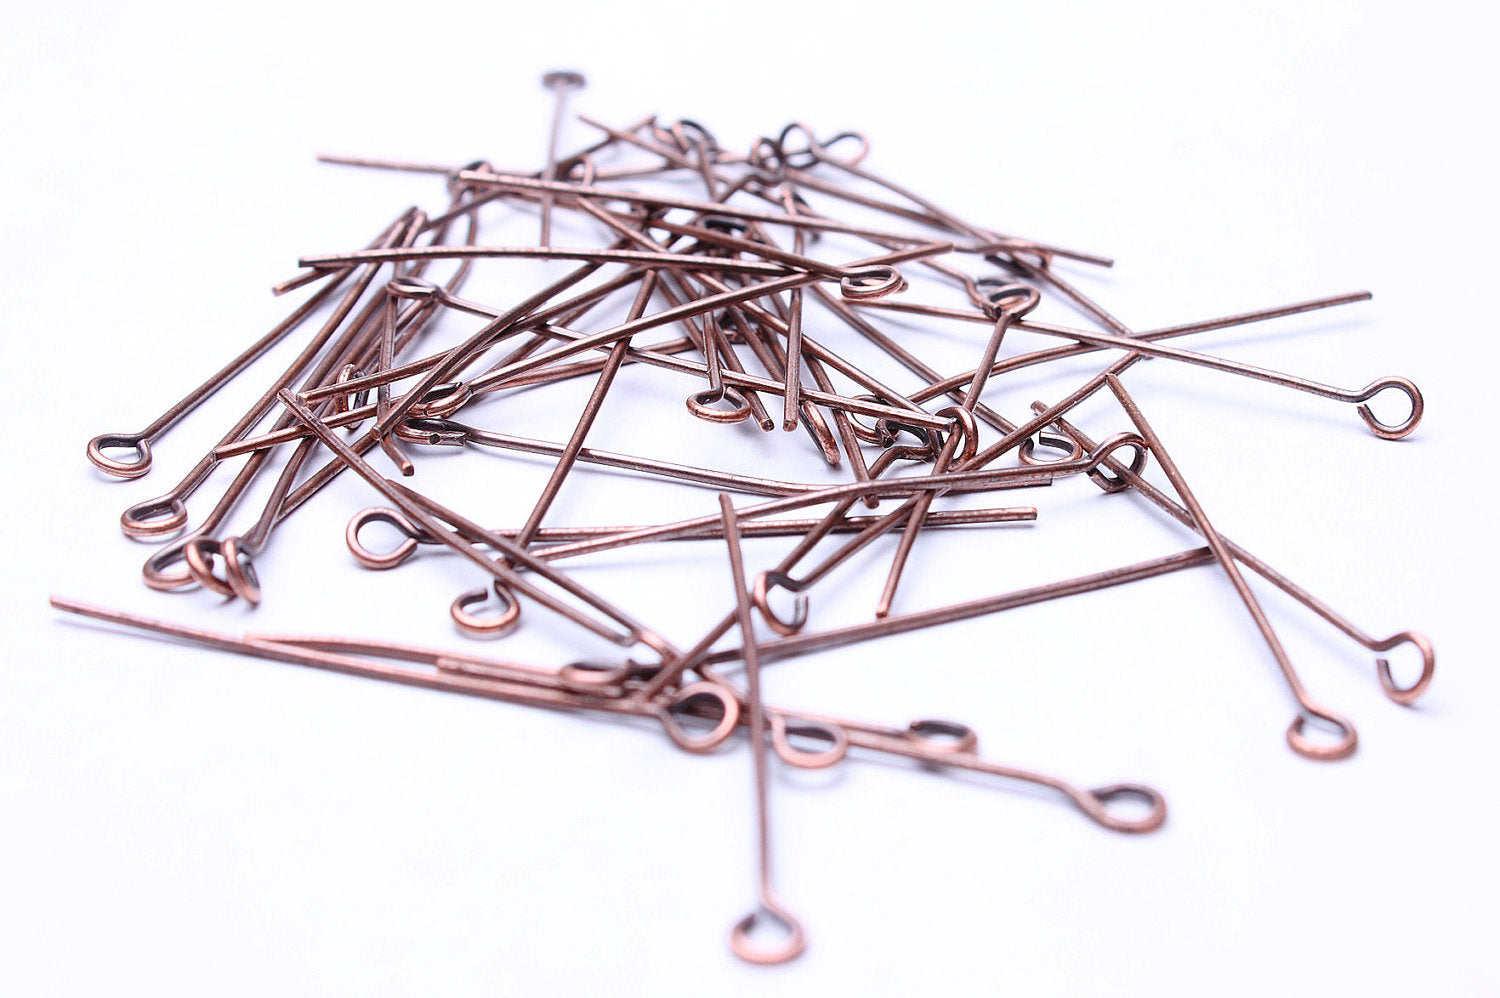 35mm antique copper eyepins - nickel free - lead free - 50 pieces (492)